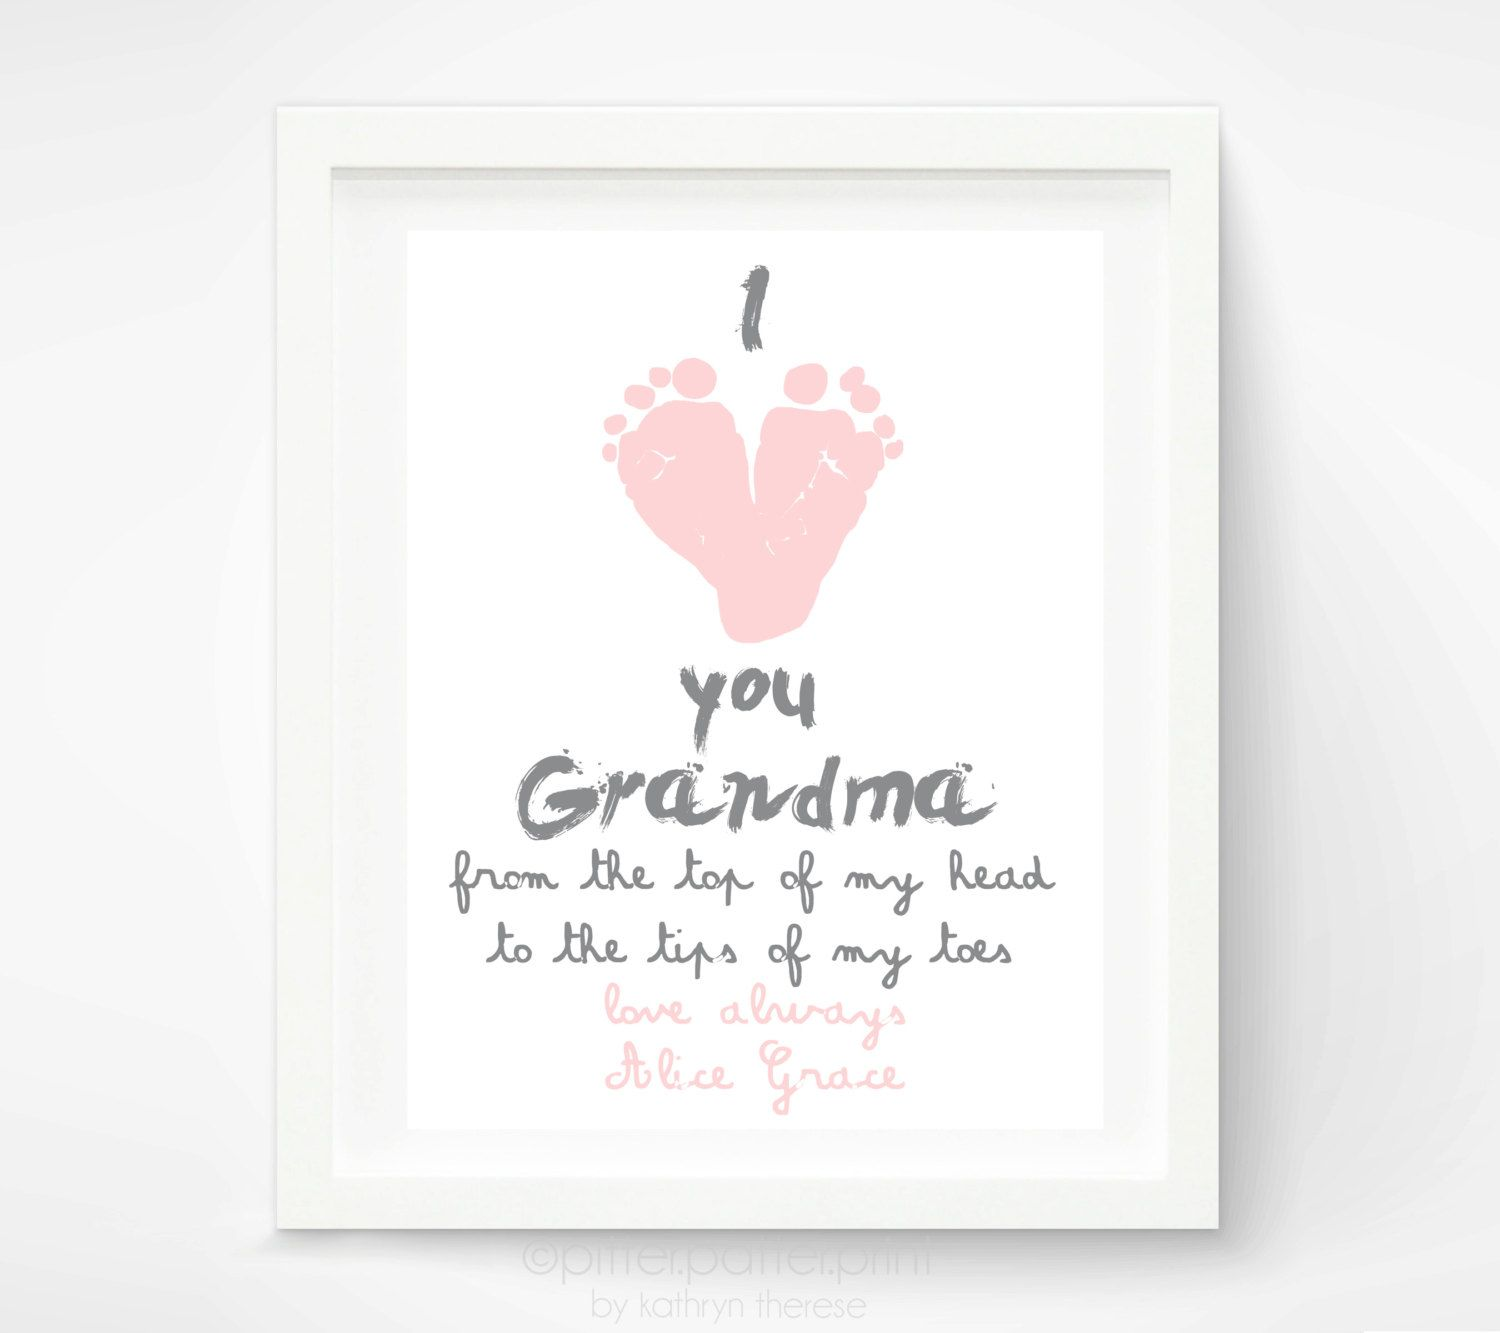 Personalized Motheru0027s Day Gift for Grandma - I Love you Grandma Baby footprint Art - Gift for Grandmother - Gift for New Grandma. $30.00 via Etsy.  sc 1 st  Pinterest & Personalized Motheru0027s Day Gift for Grandma From Baby I Love you ...